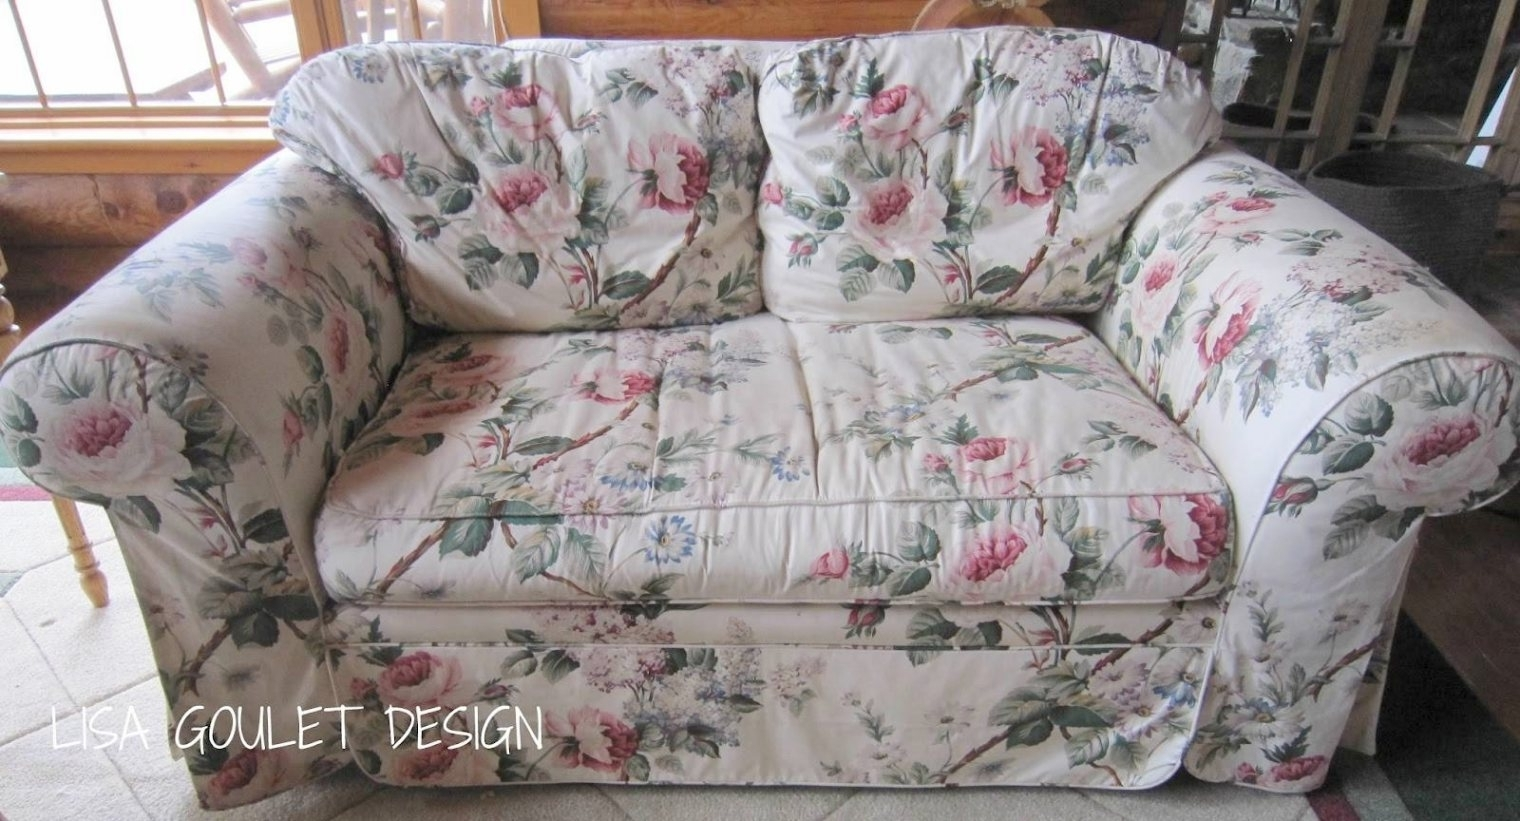 Chintz Covered Sofas Regarding Latest Chintz Sofa – Gallery Image Serenityrealm Throughout Chintz (View 1 of 15)